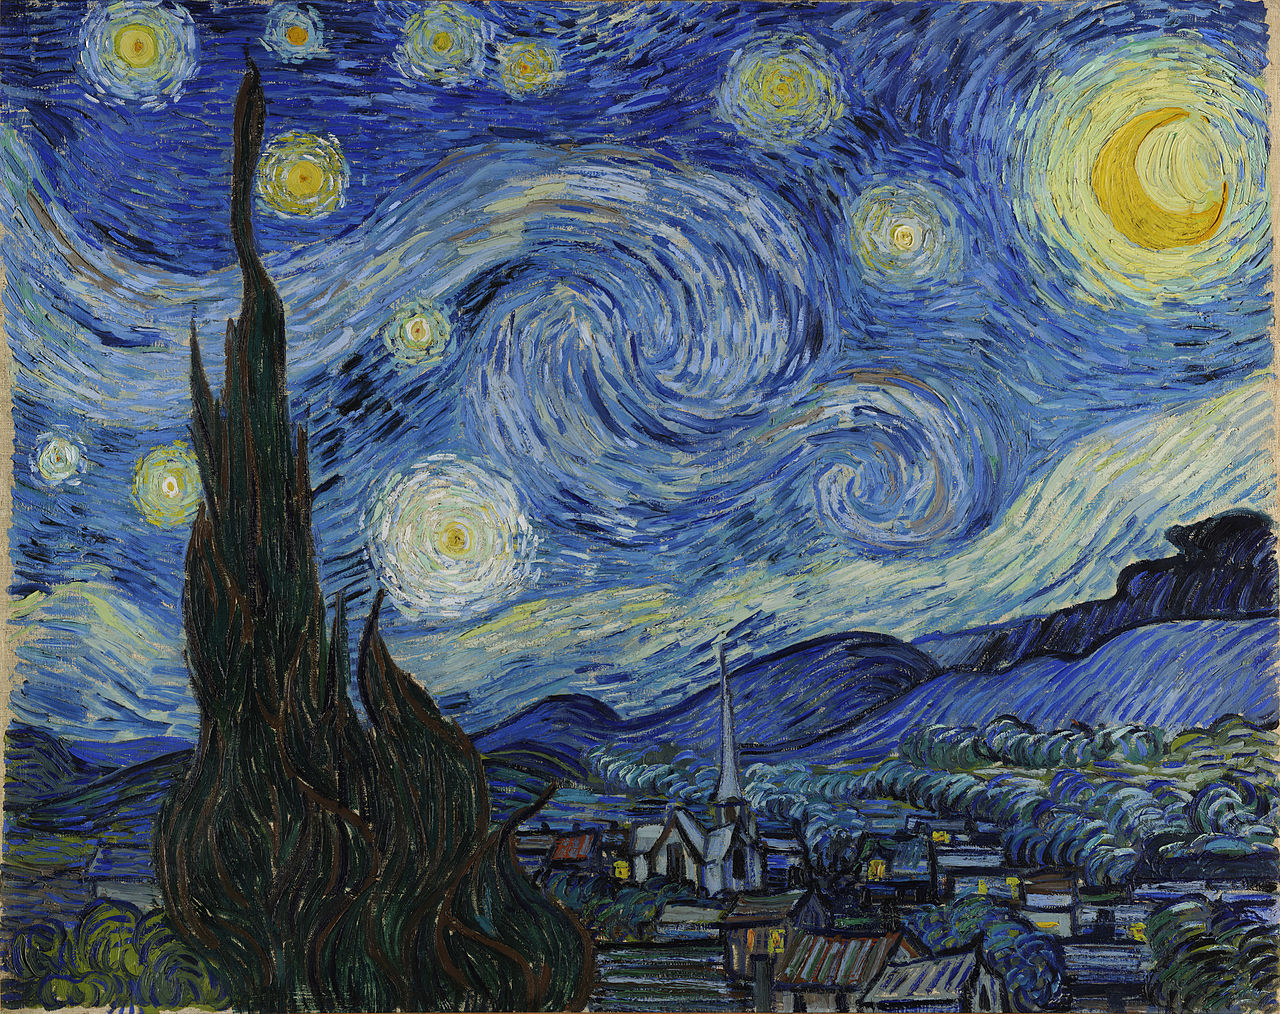 Vincent Van Gogh's famous artwork titled 'The Starry Night'